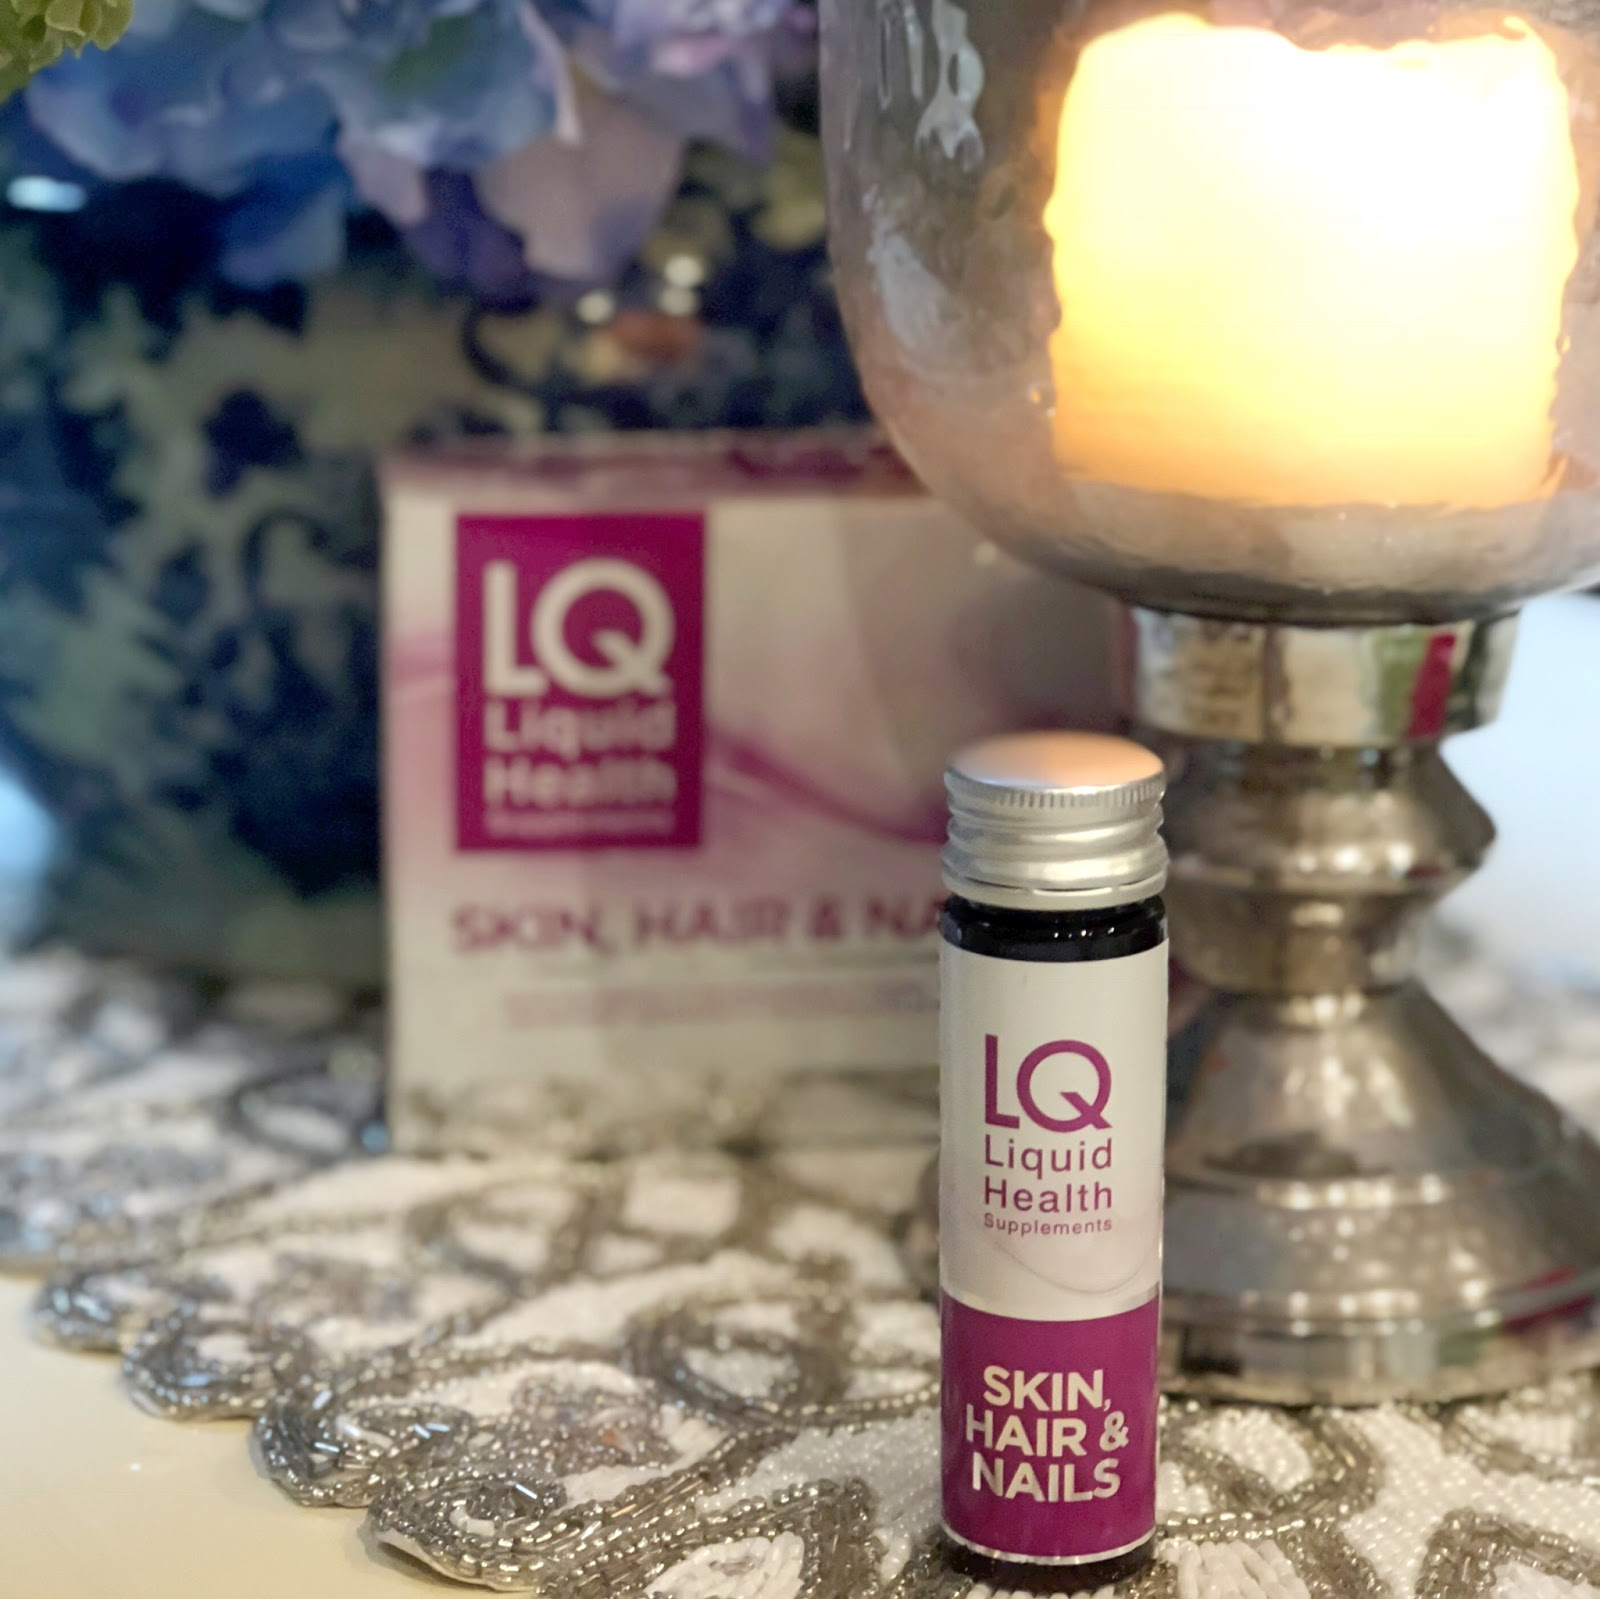 my midlife fashion, lq liquid health skin, hair and nails